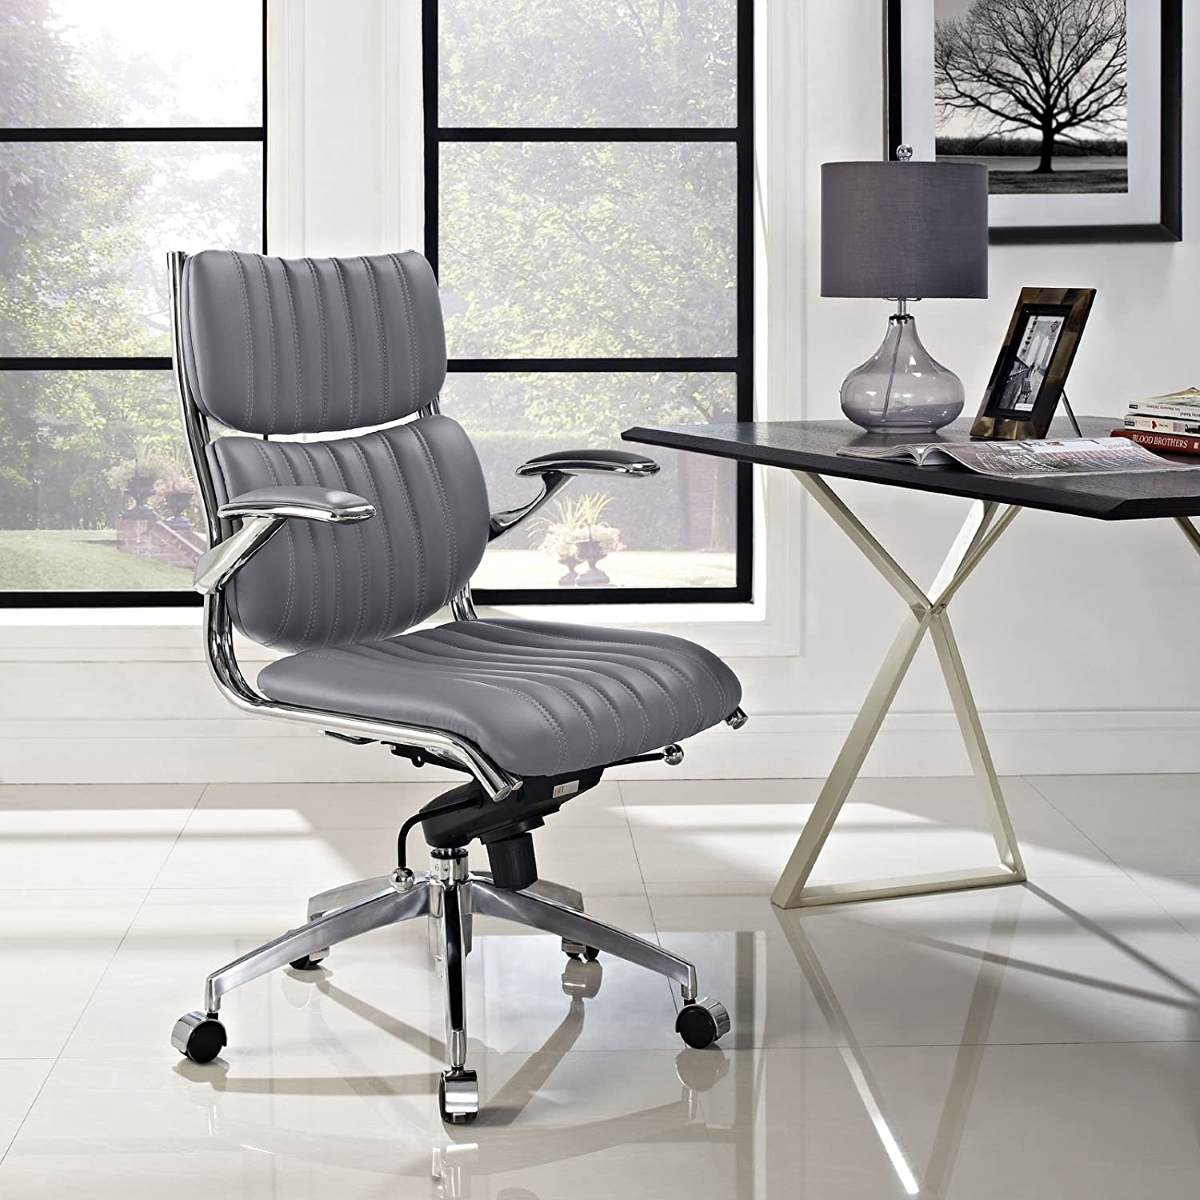 Modern-Grey-Leather-Office-Chair